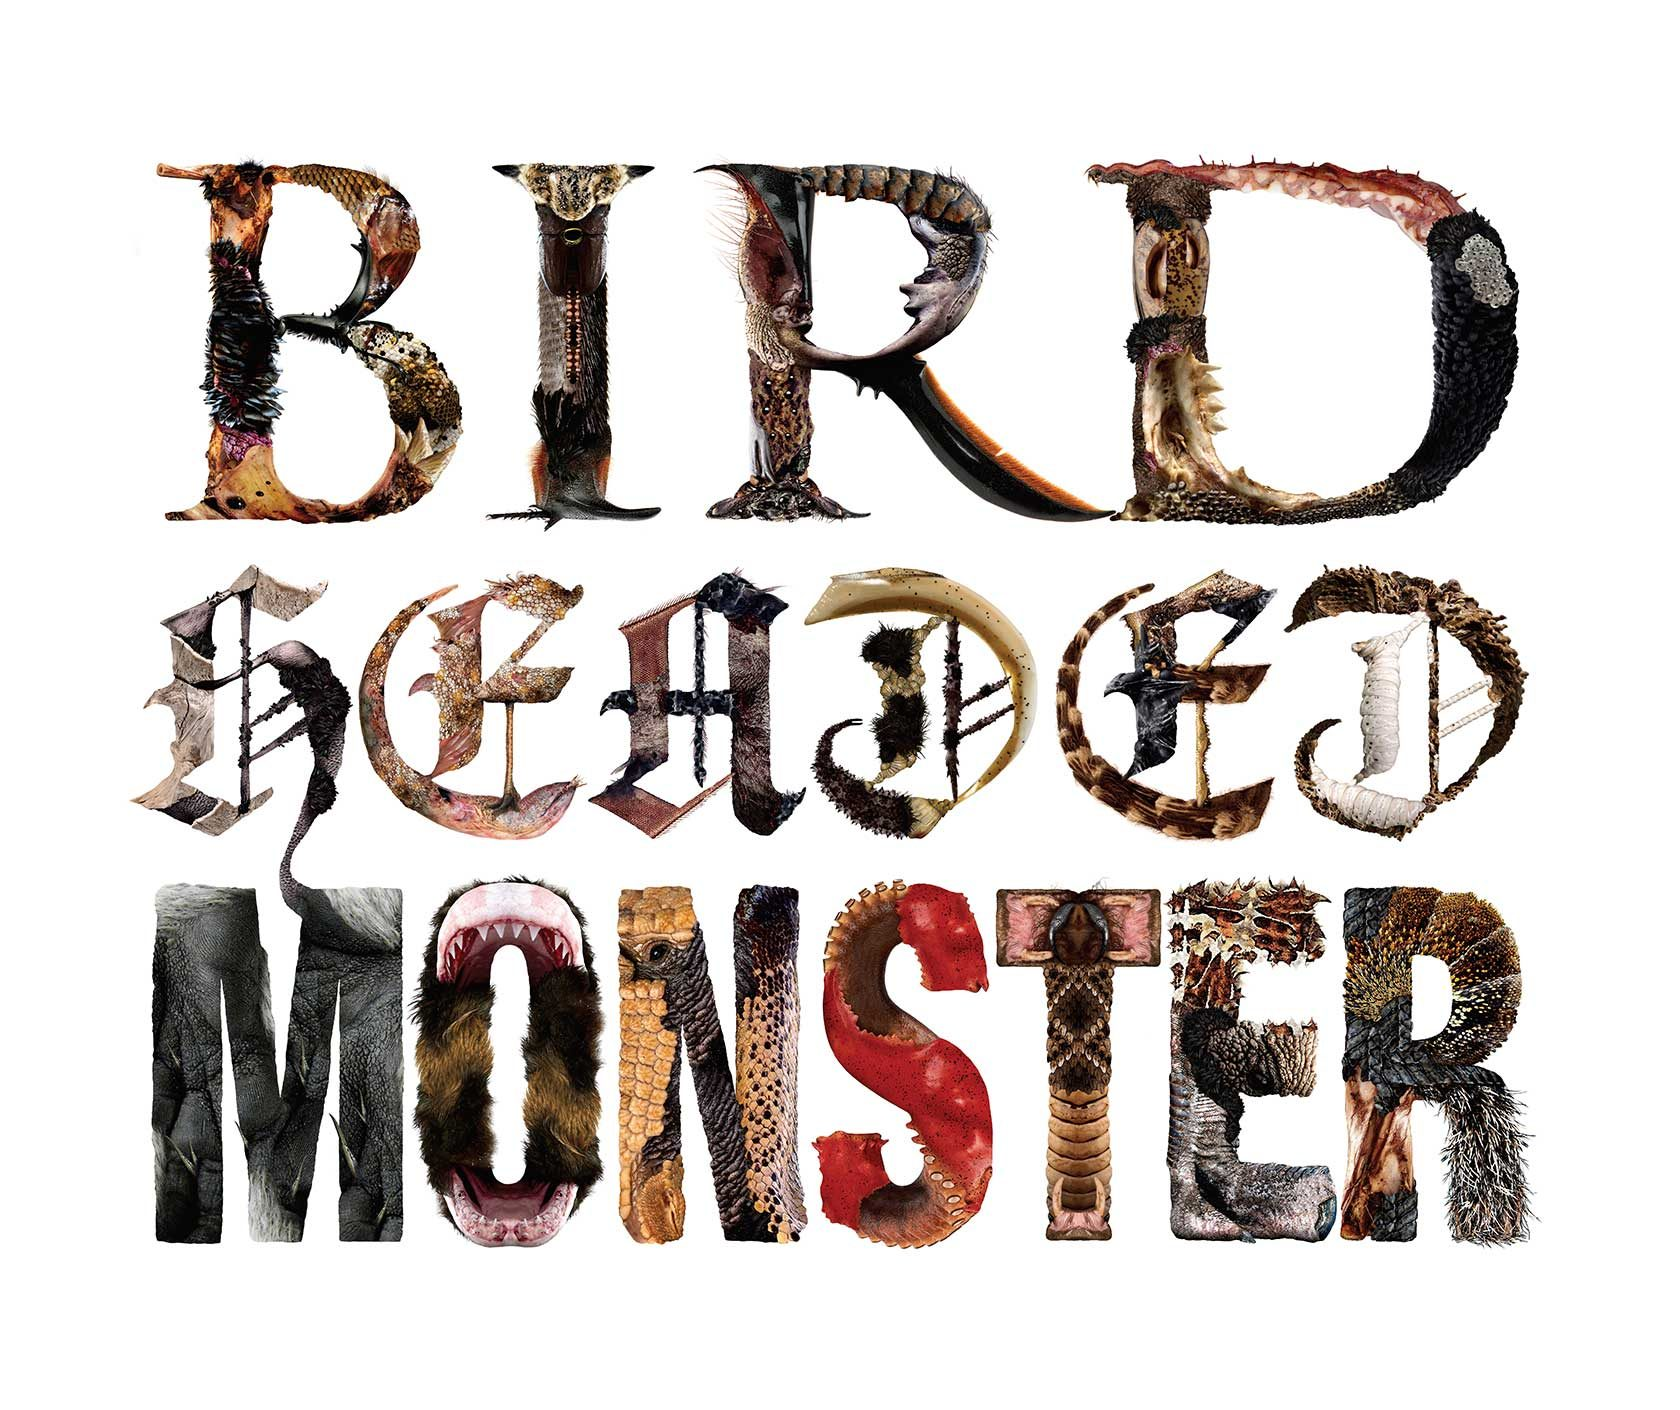 Bird Headed Monster Typography Design by Furia